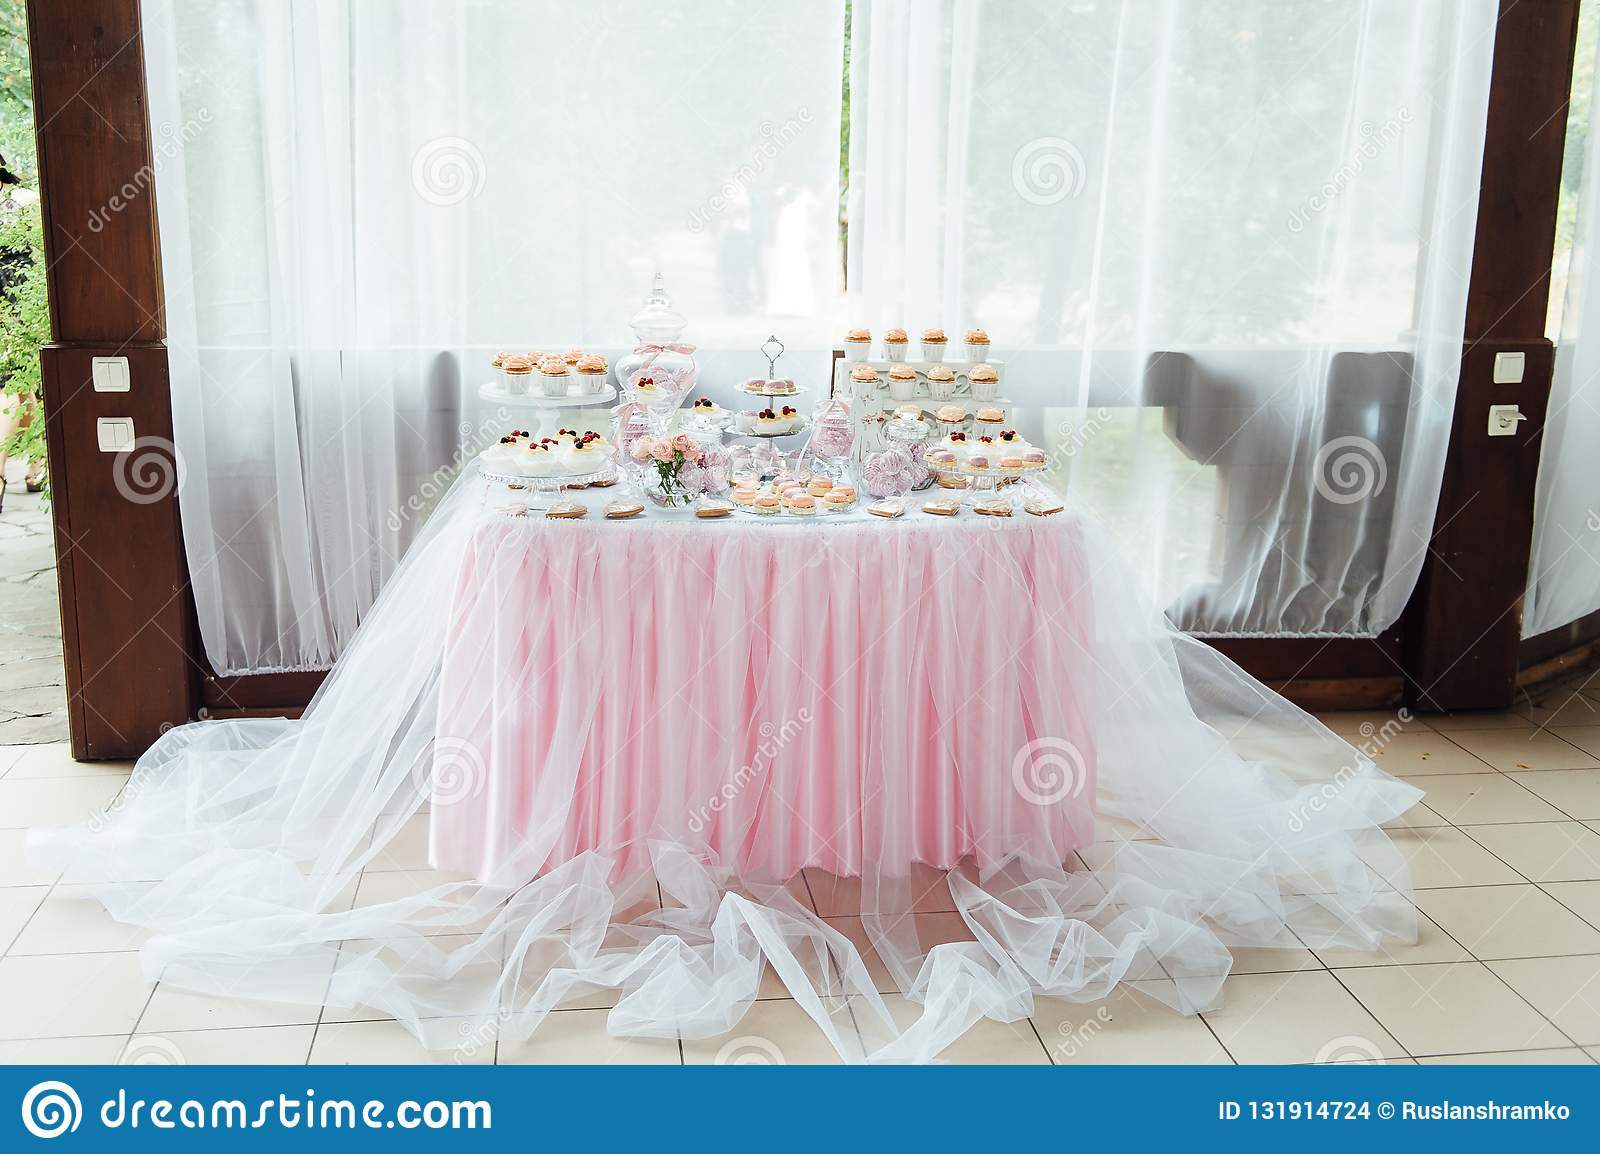 Kids birthday party decoration and cake. Decorated table